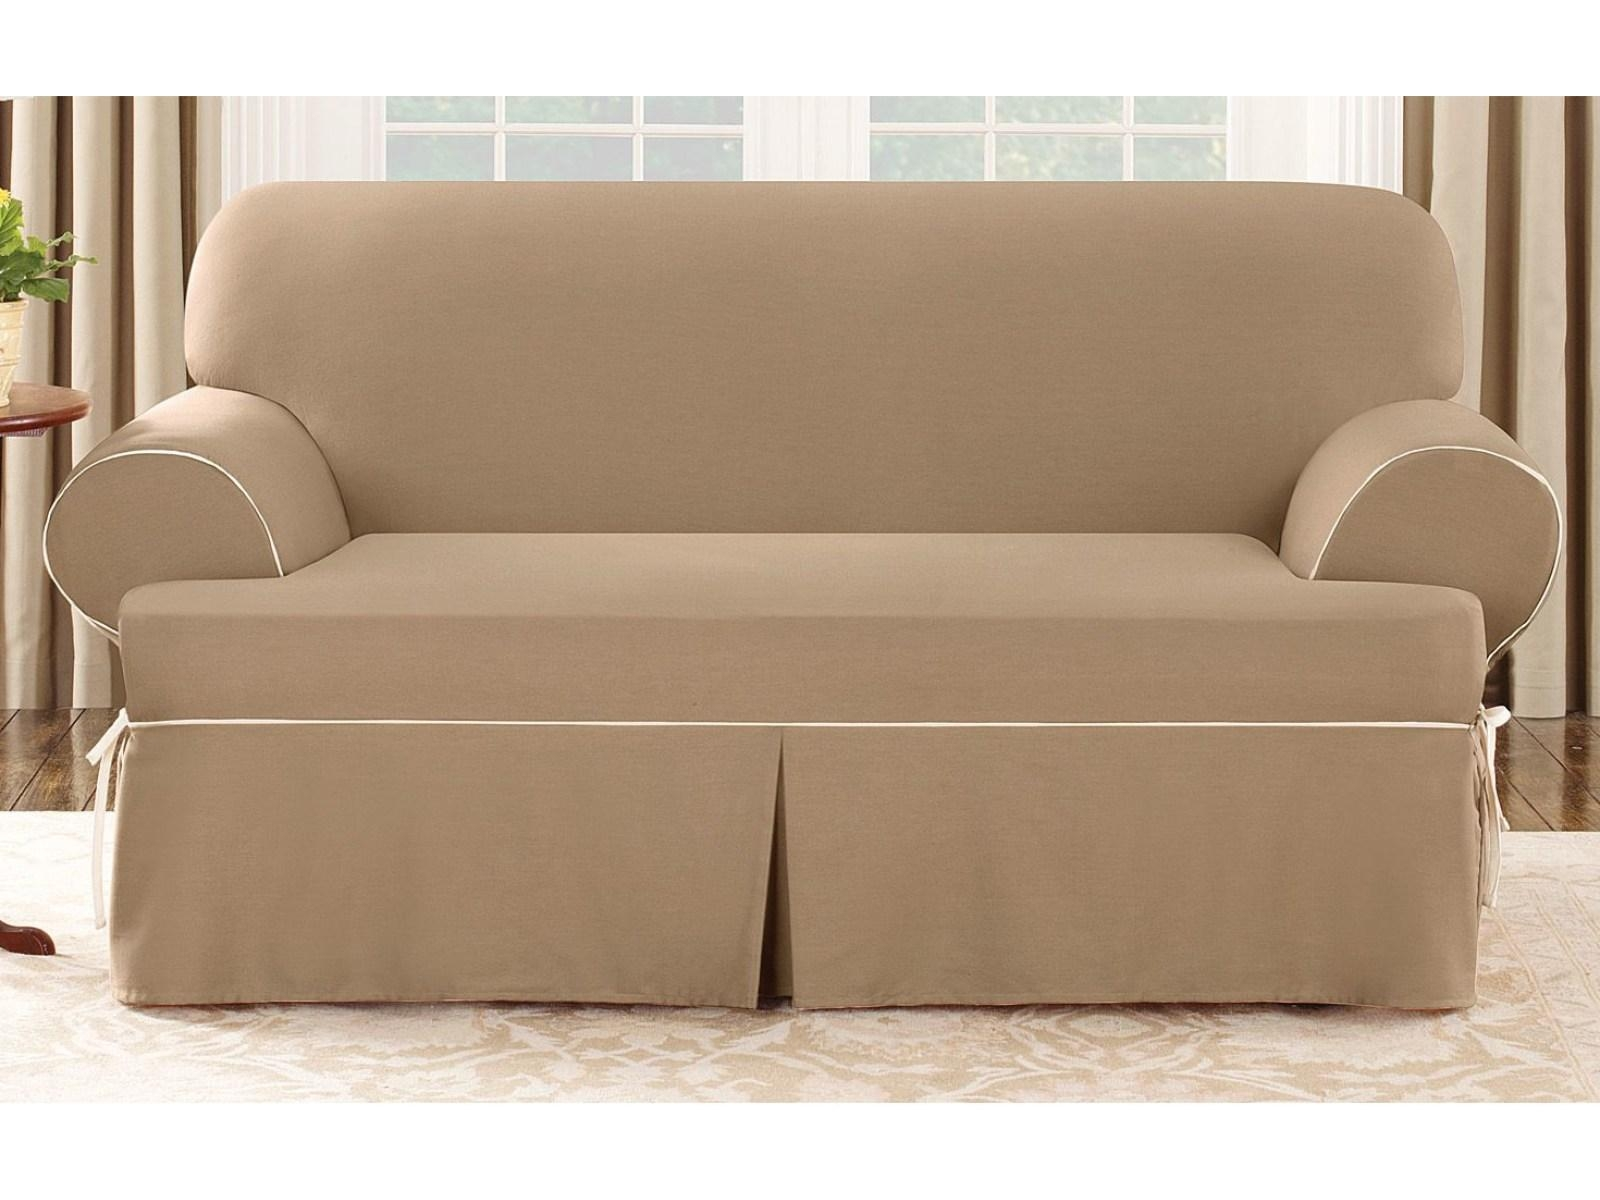 Sofas Center : Leather Reclining Sofa Coversreclining Covers Throughout Slipcover For Reclining Sofas (Image 19 of 20)